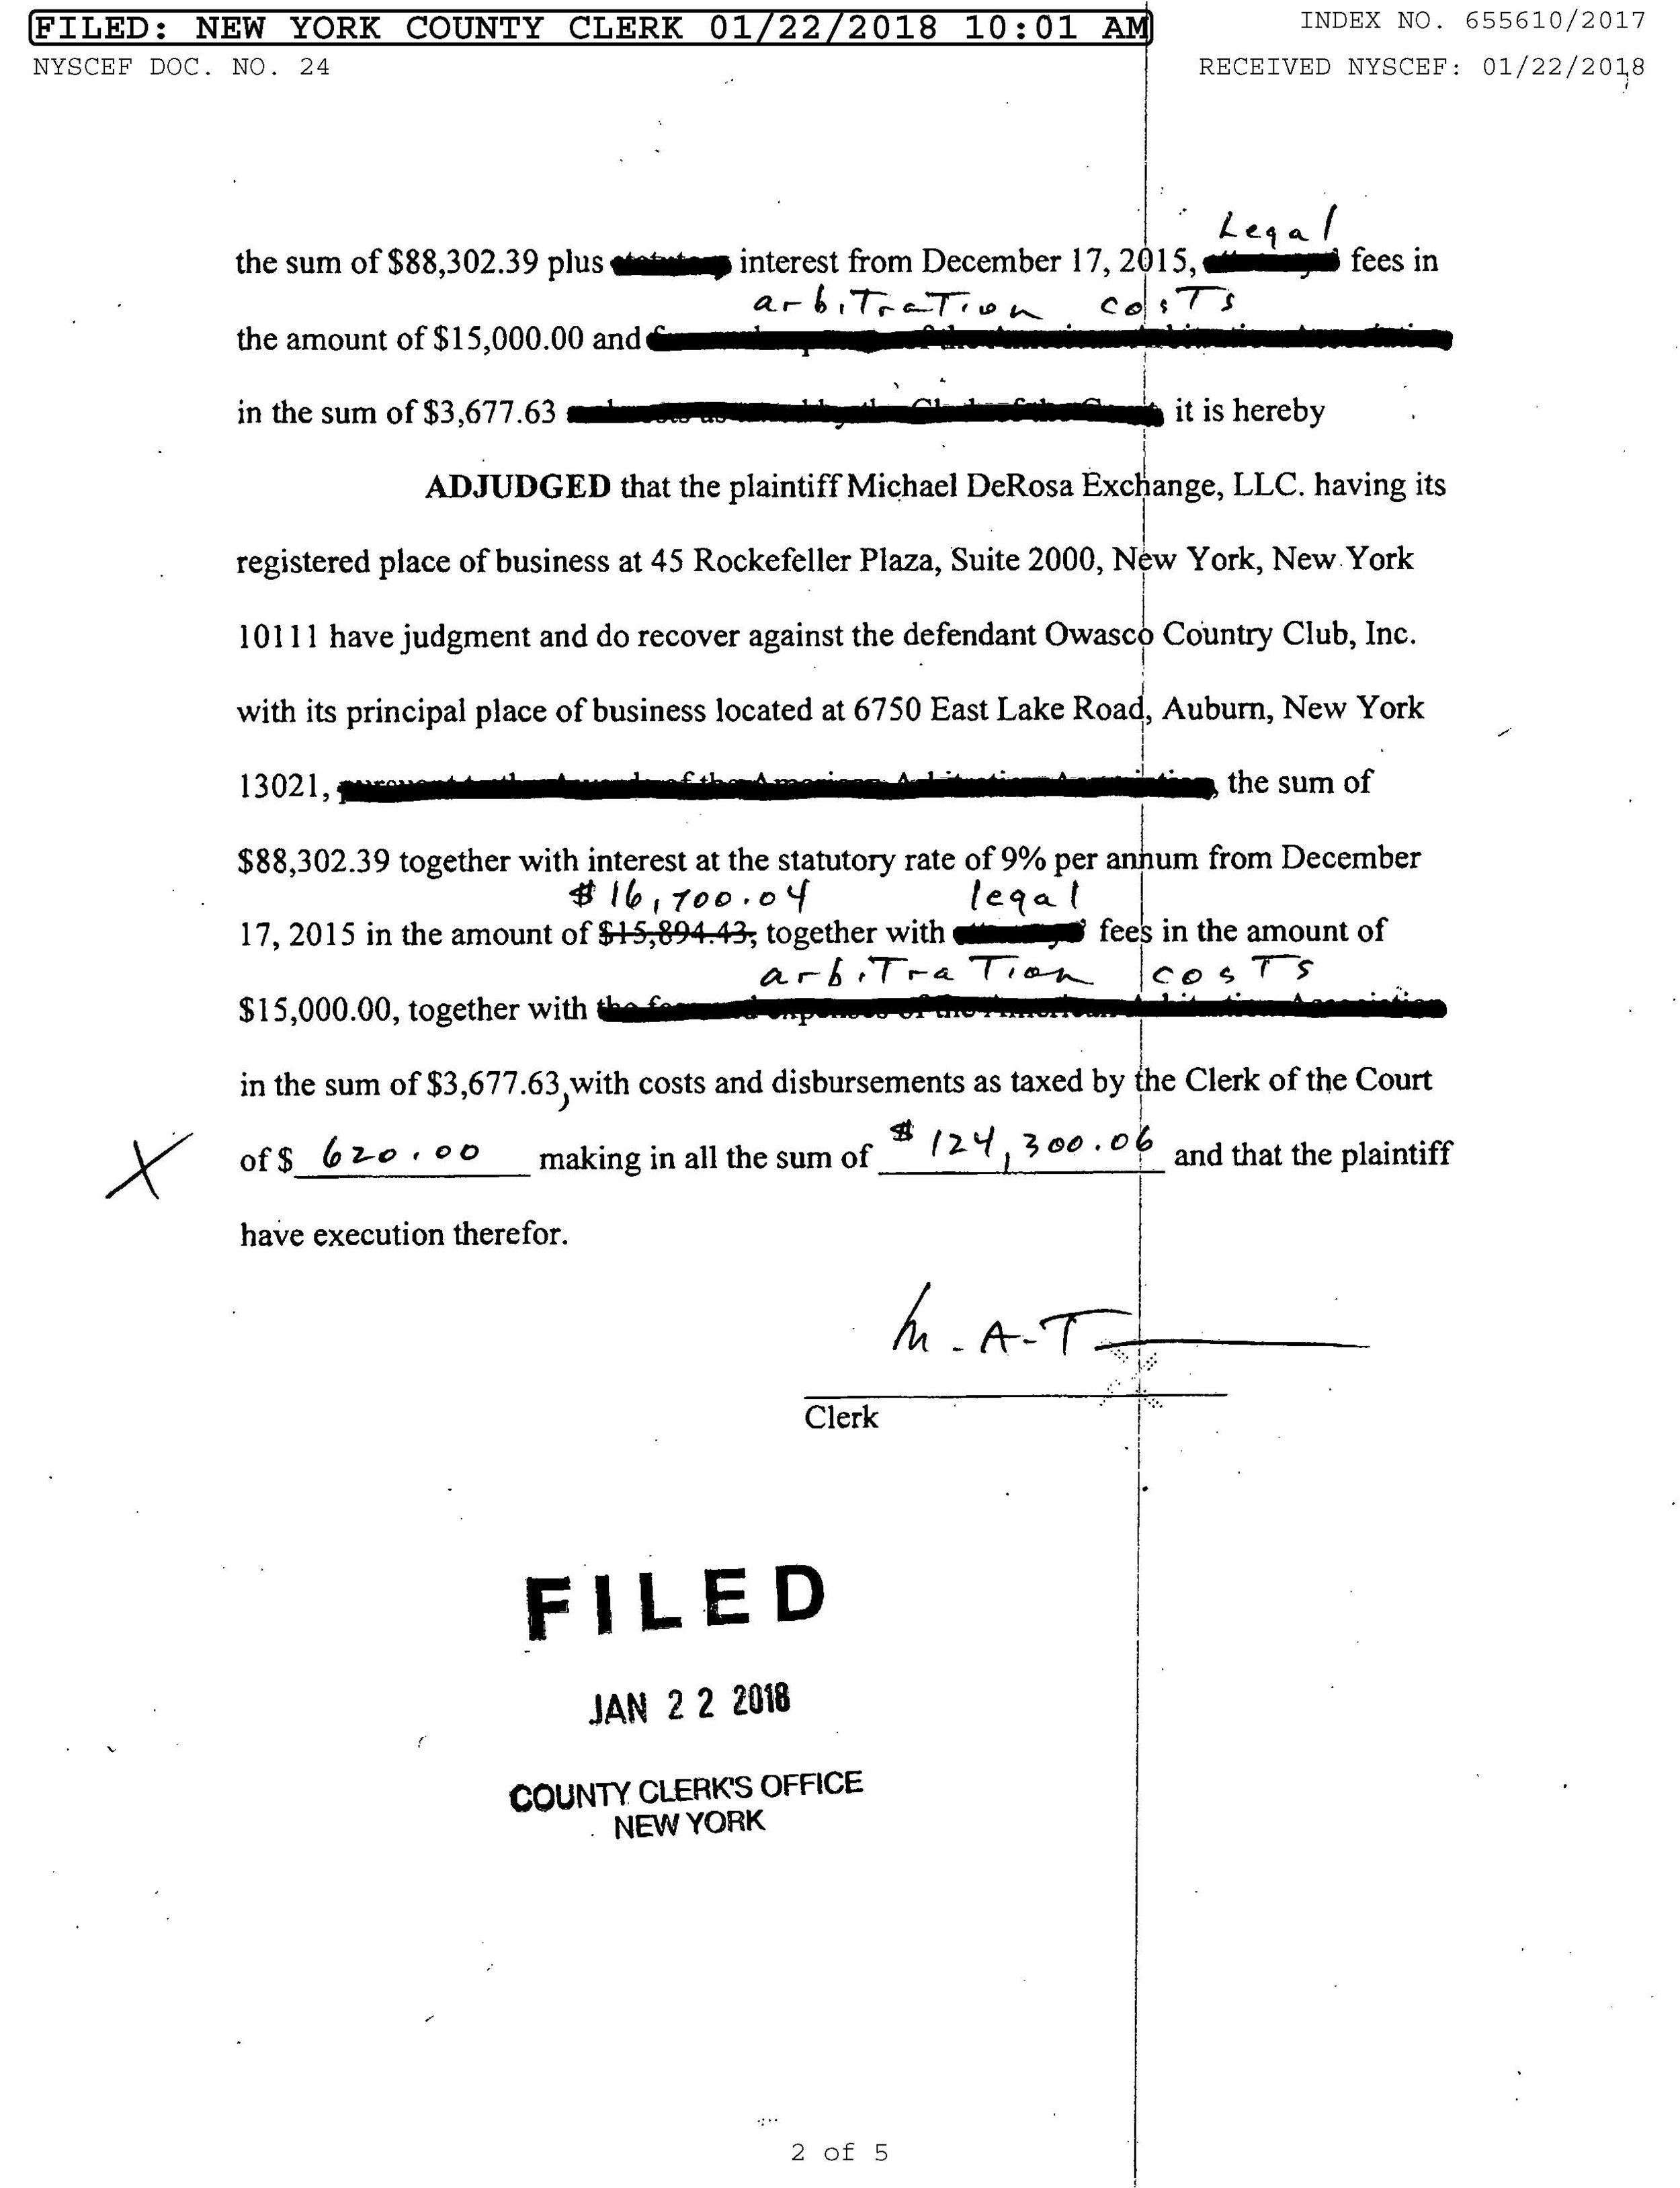 JUDGMENT Page 2 of 5 Michael DeRosa Exchange, LLC defeats Owasco County Club, Inc. in legal battle over brokerage commission for the sale of the Owasco Country Club.